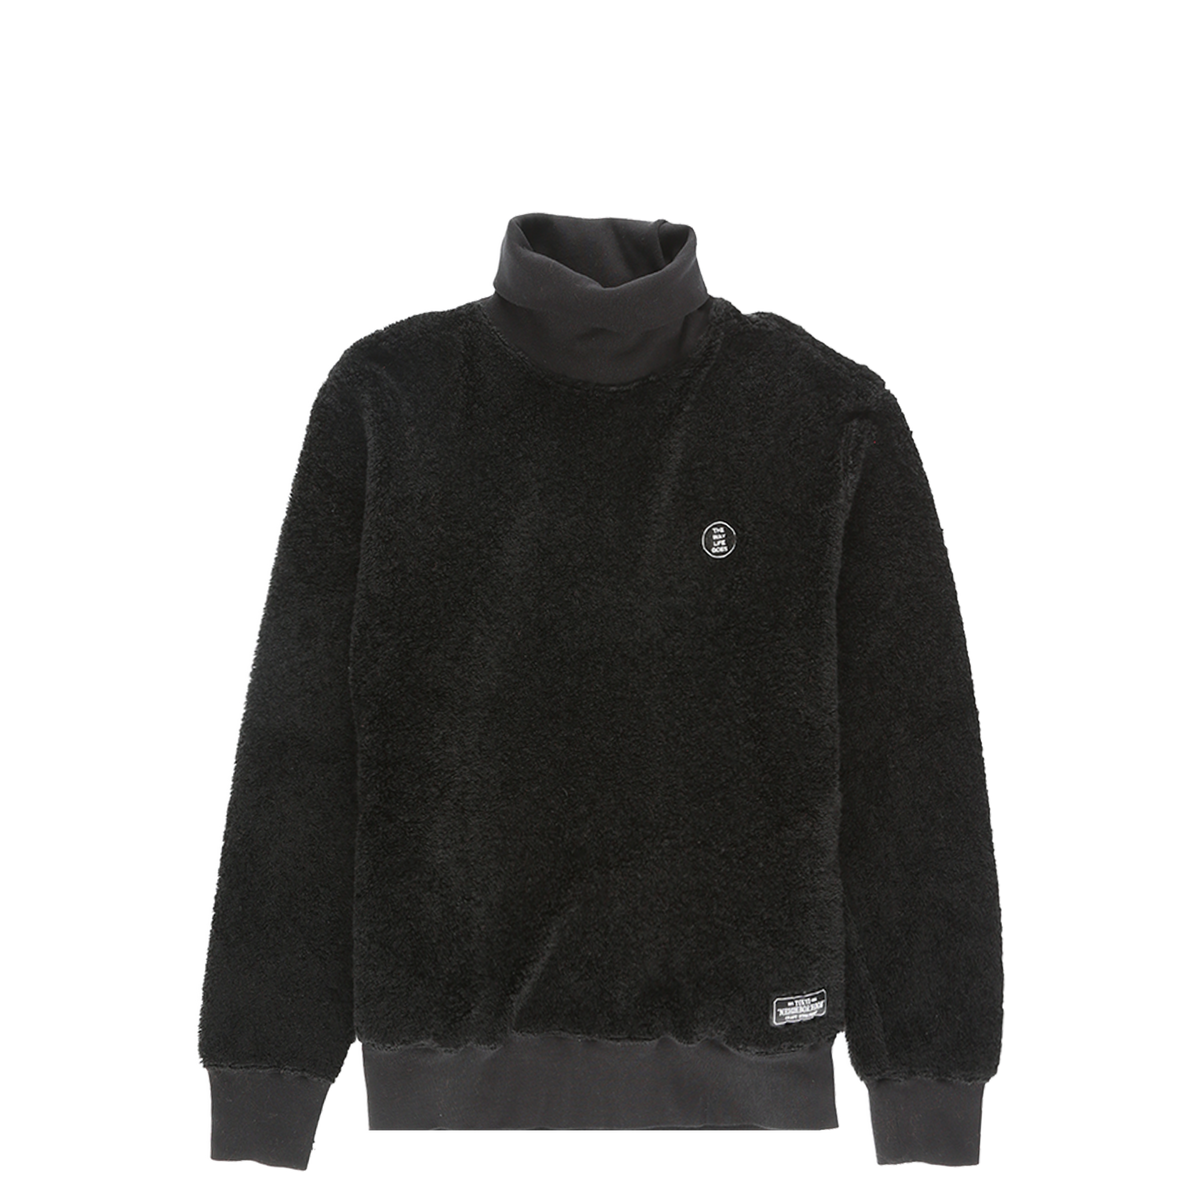 Neighborhood Polar Fleece Turtleneck  - XHIBITION